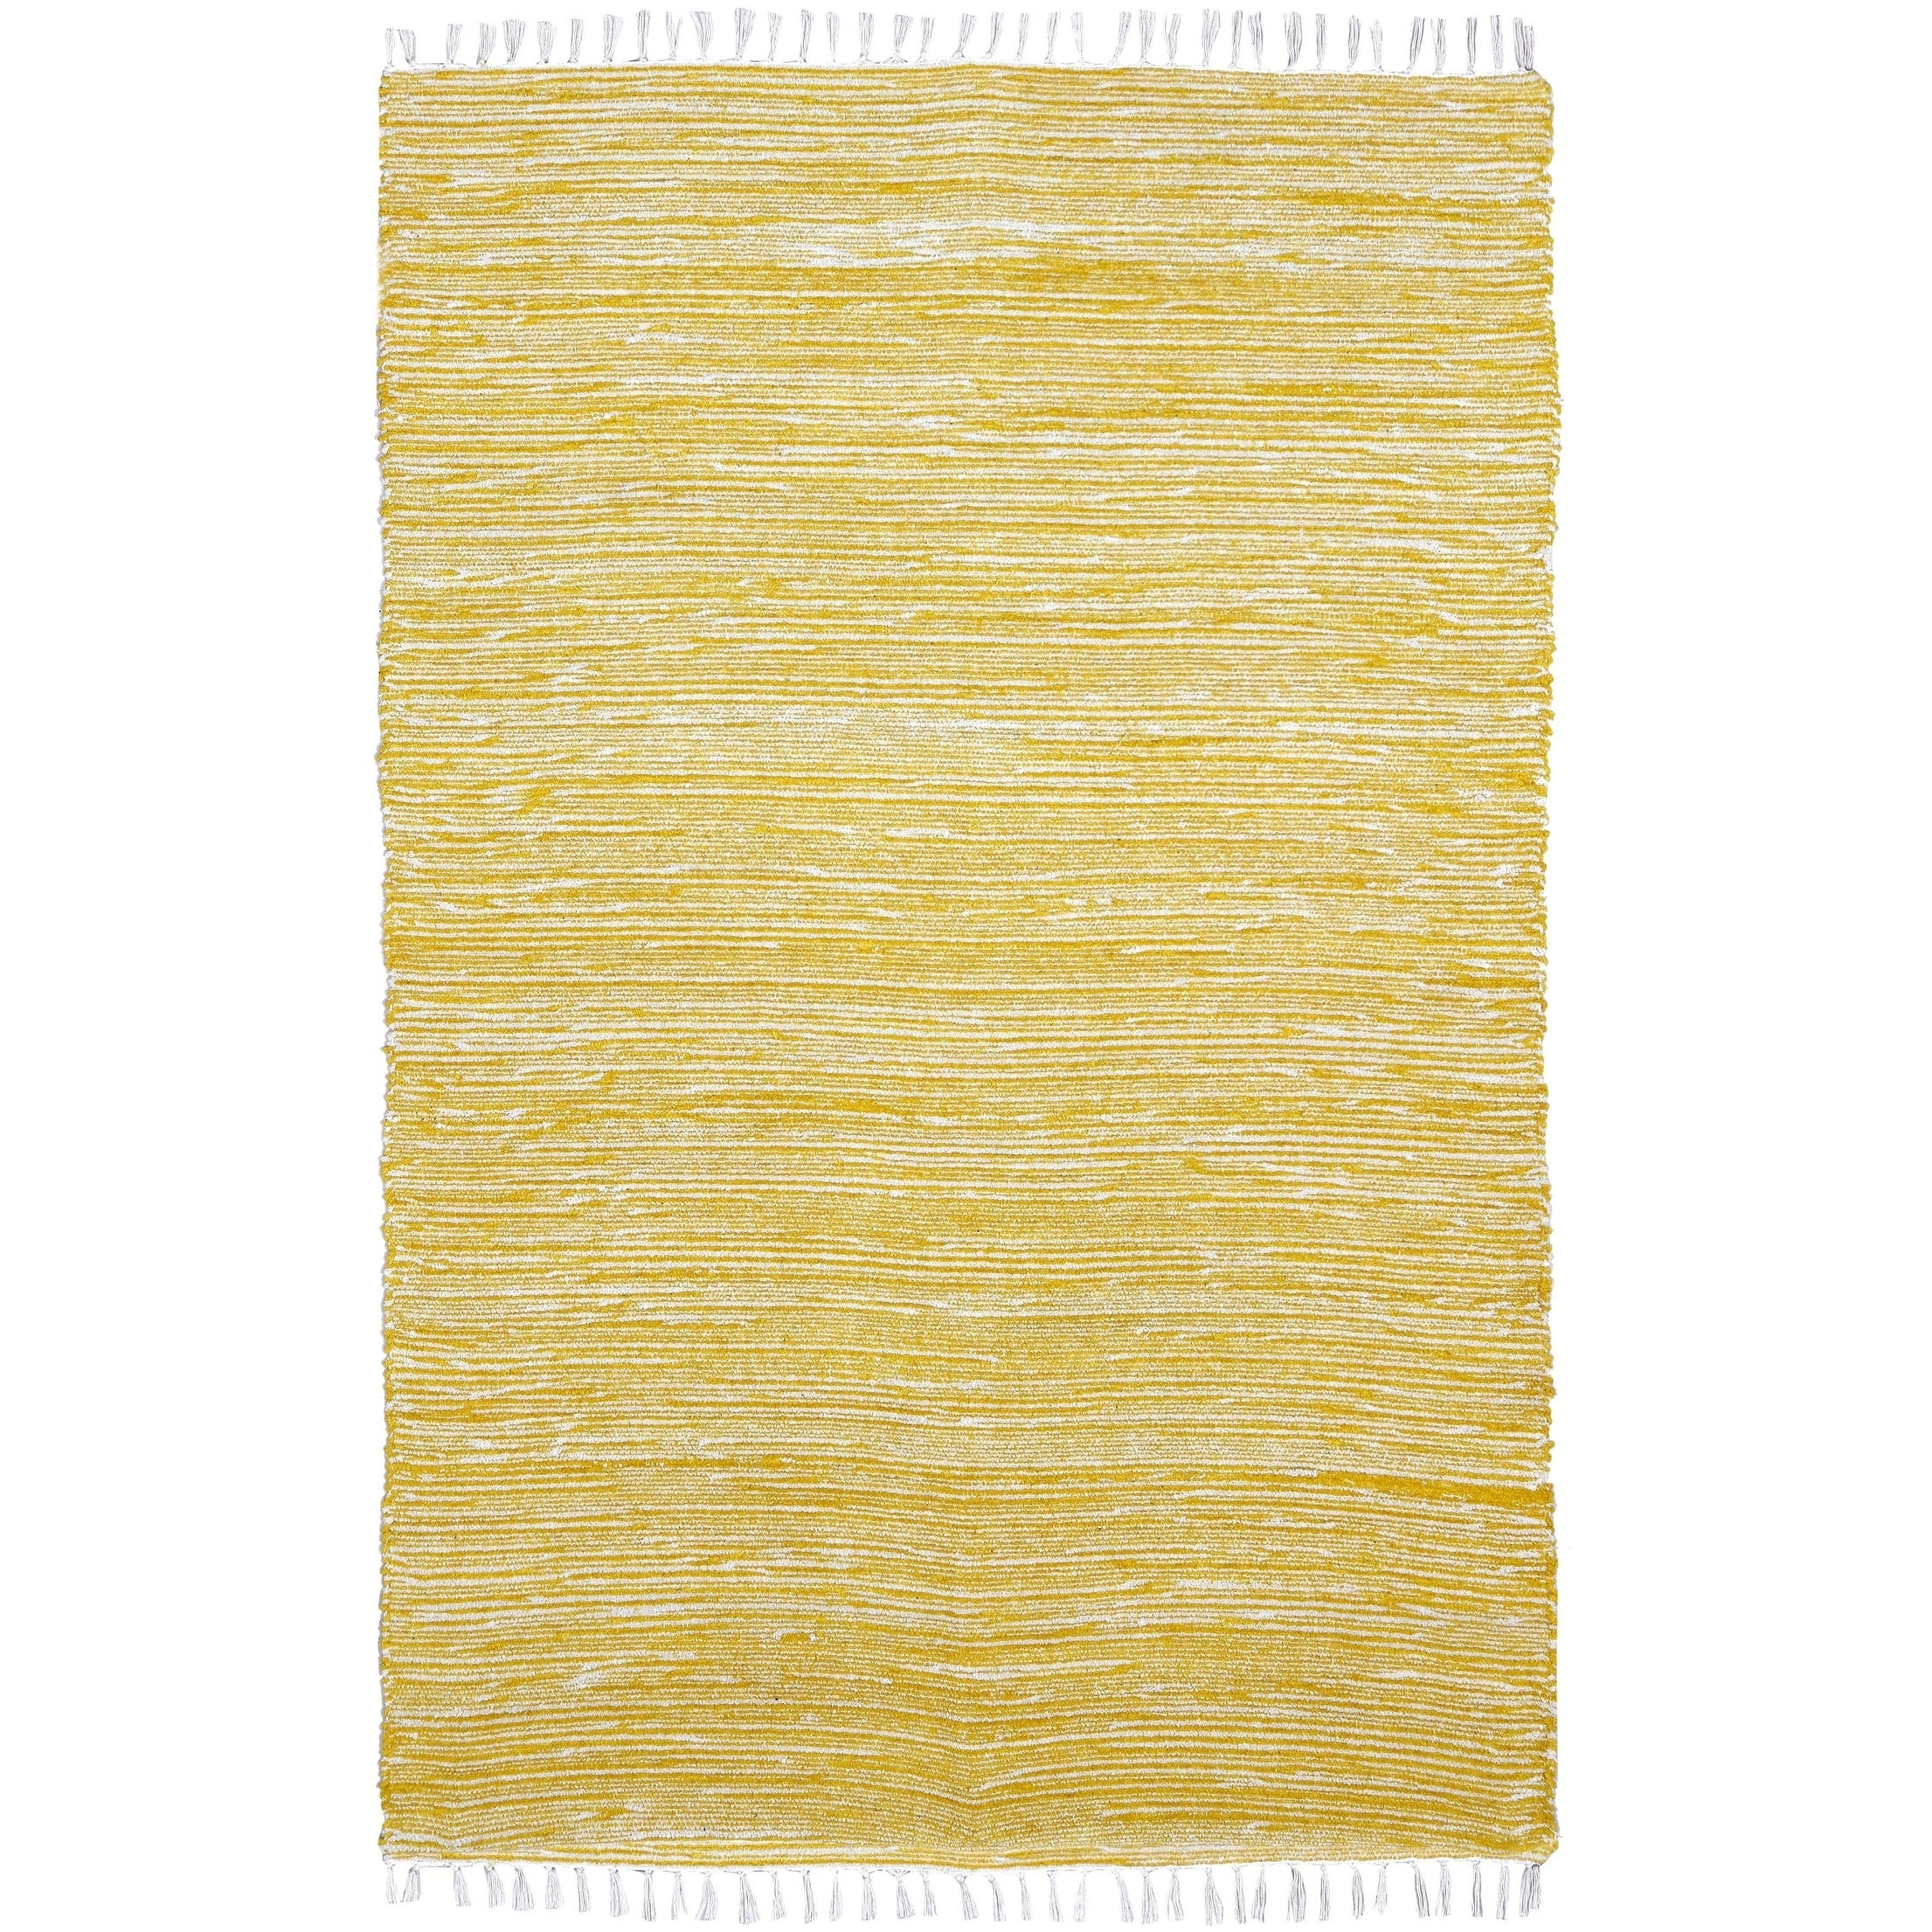 Yellow Complex Chenille Flat Weave Rug - 19 x 210 (Yellow - 19 x 210)